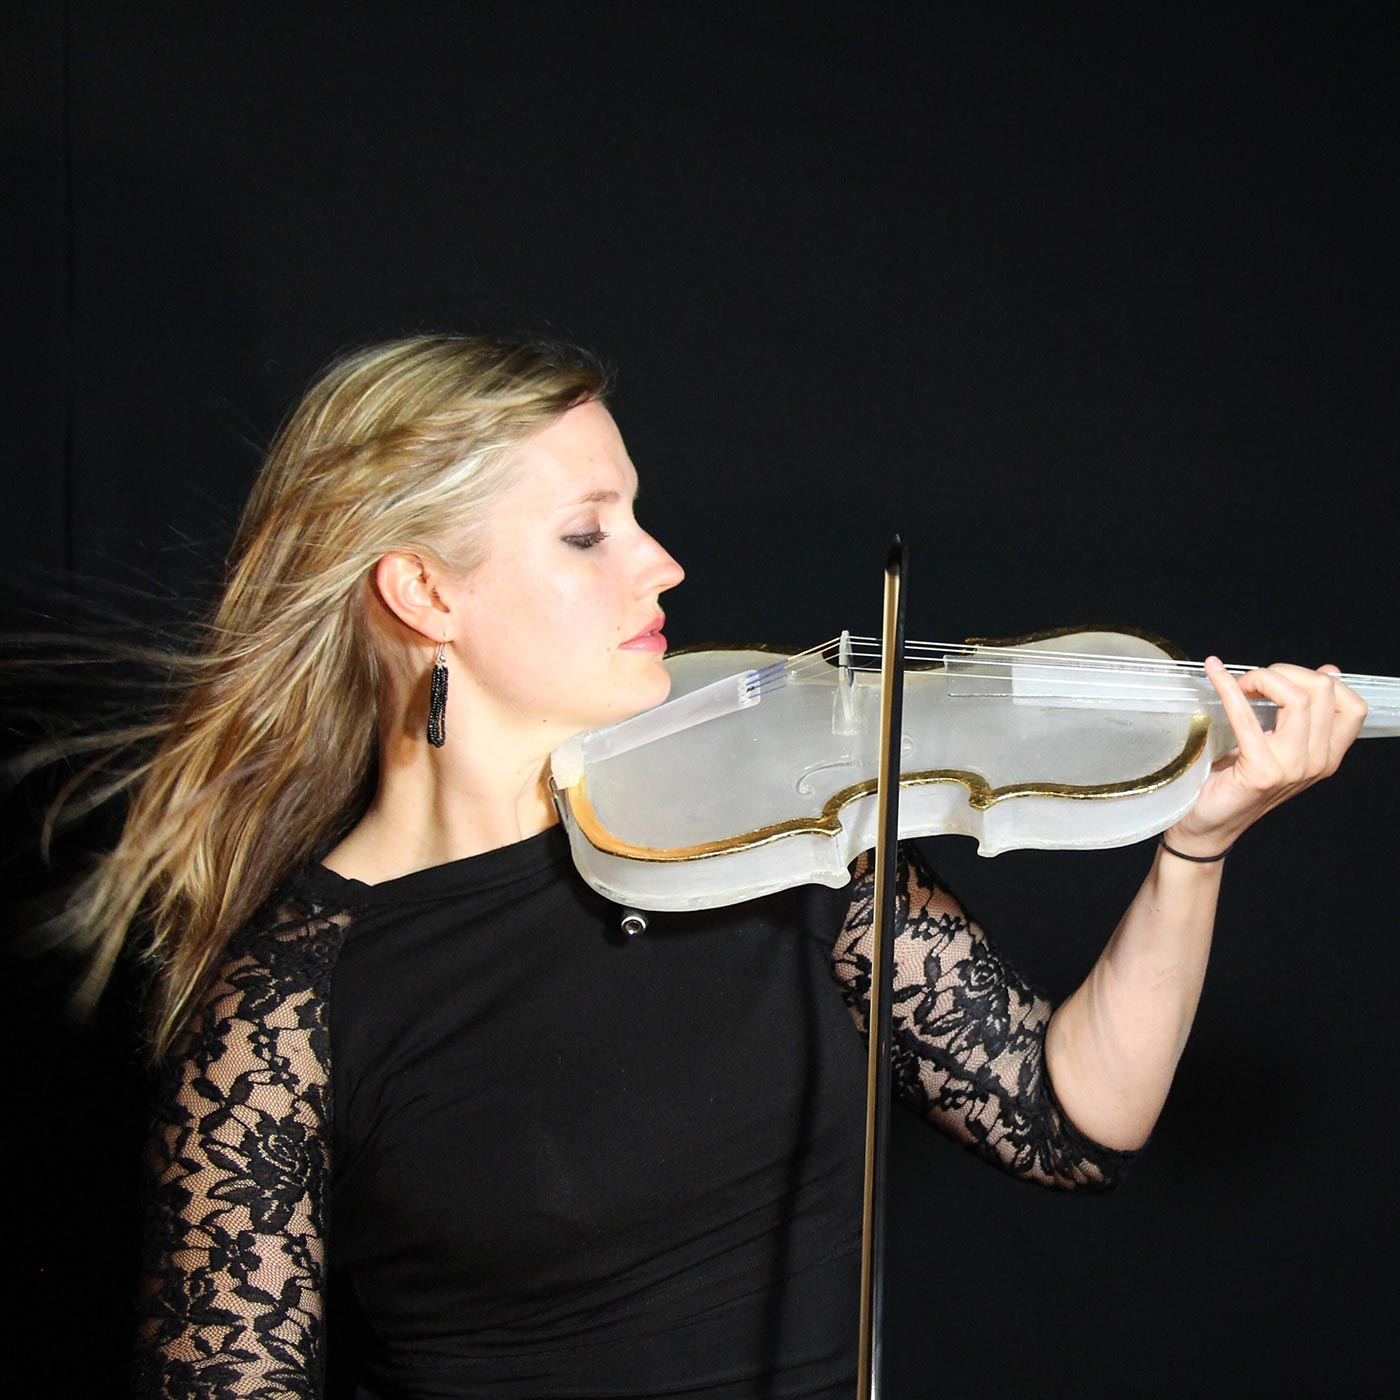 Rachel playing a white glass violin